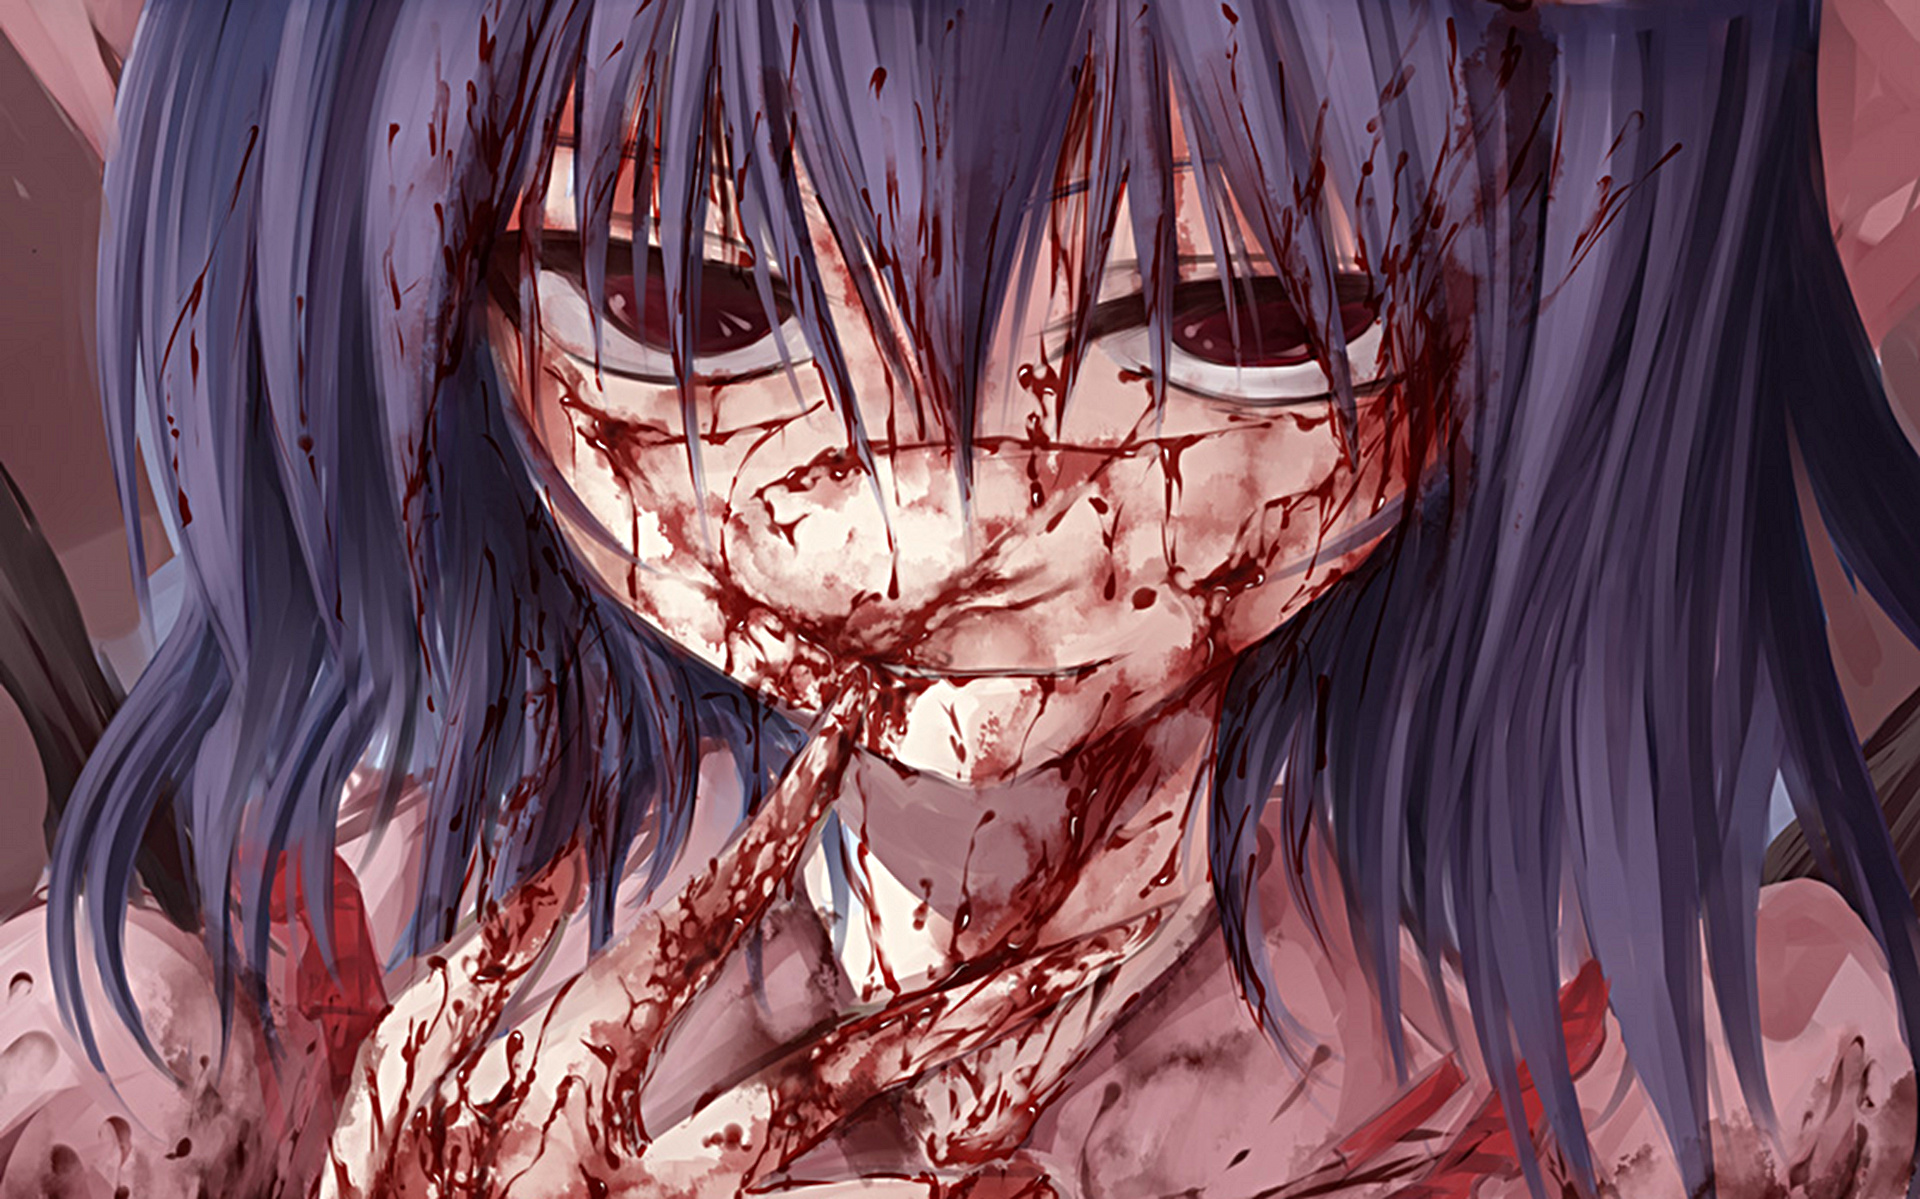 Scary bloody anime by mst